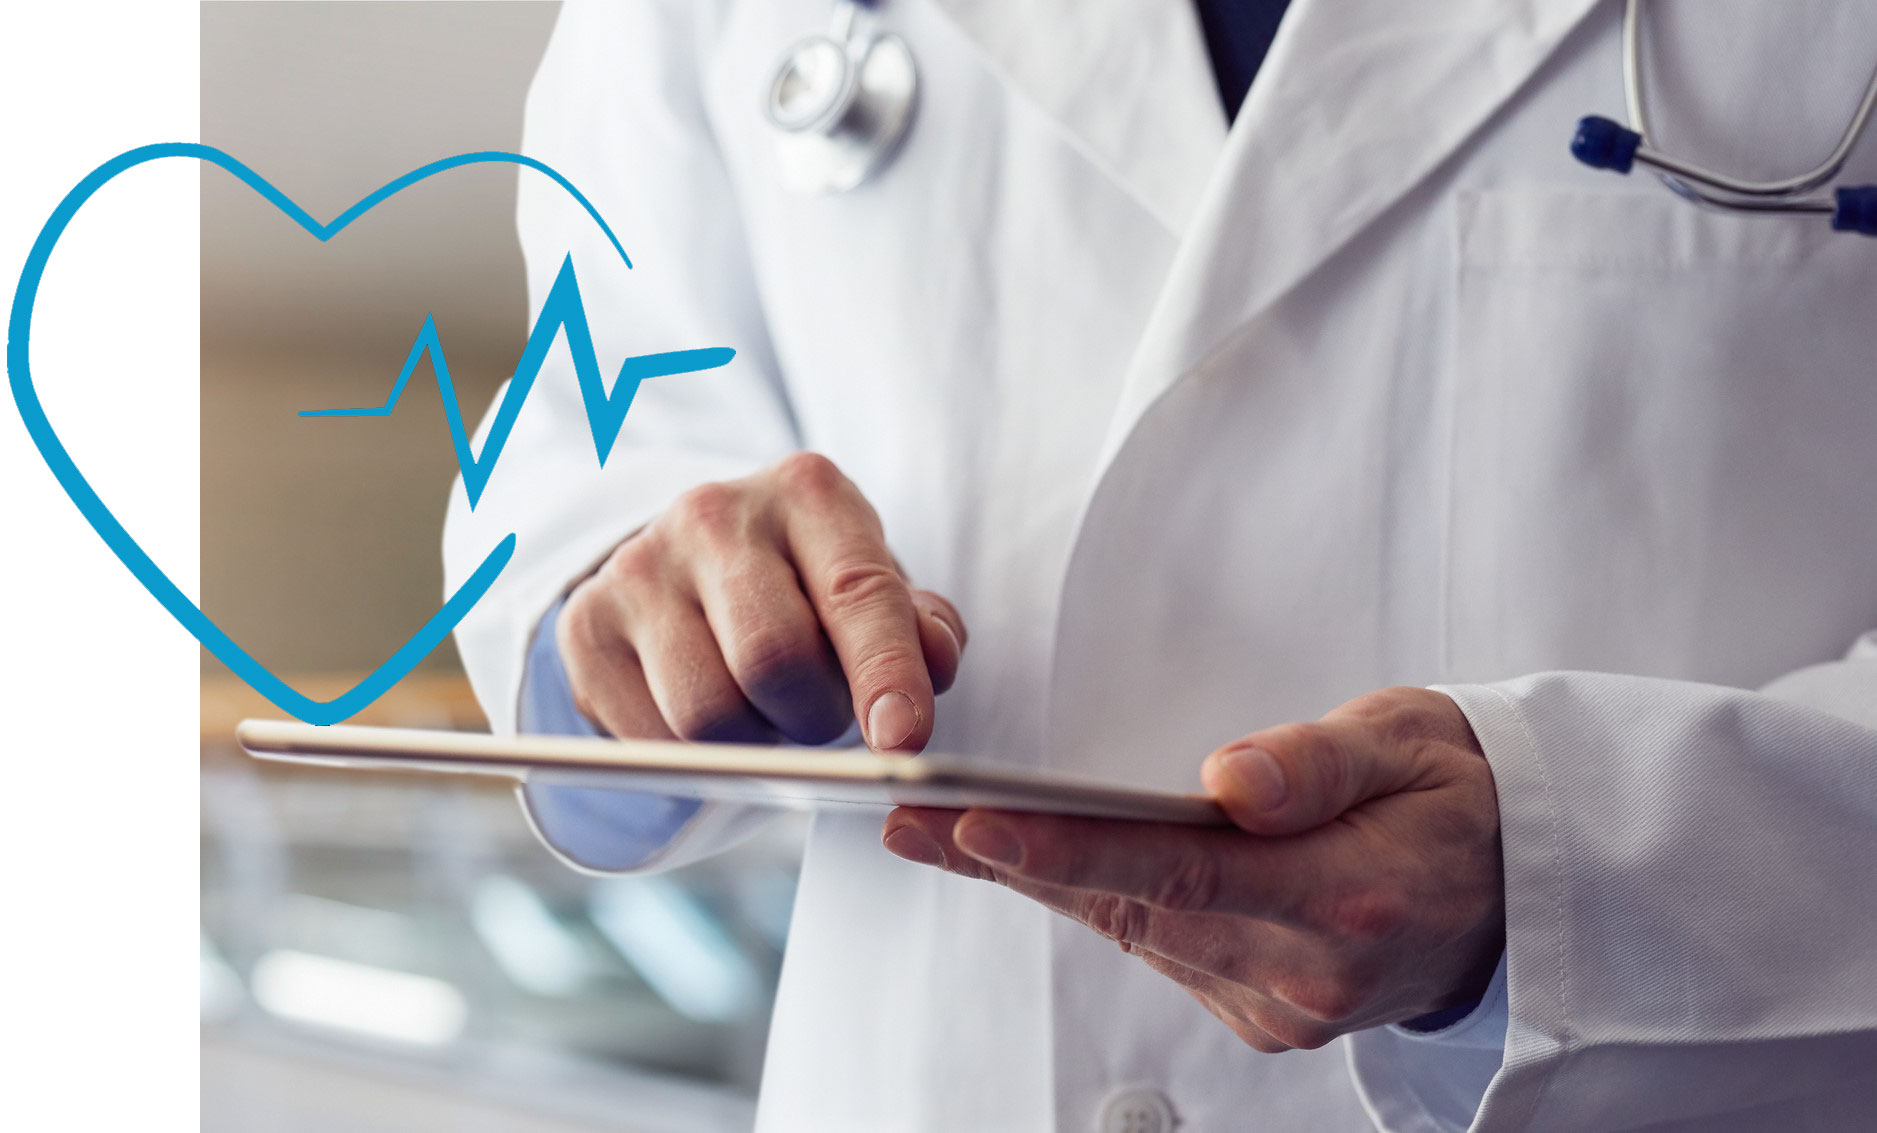 Print technology for the modern healthcare industry